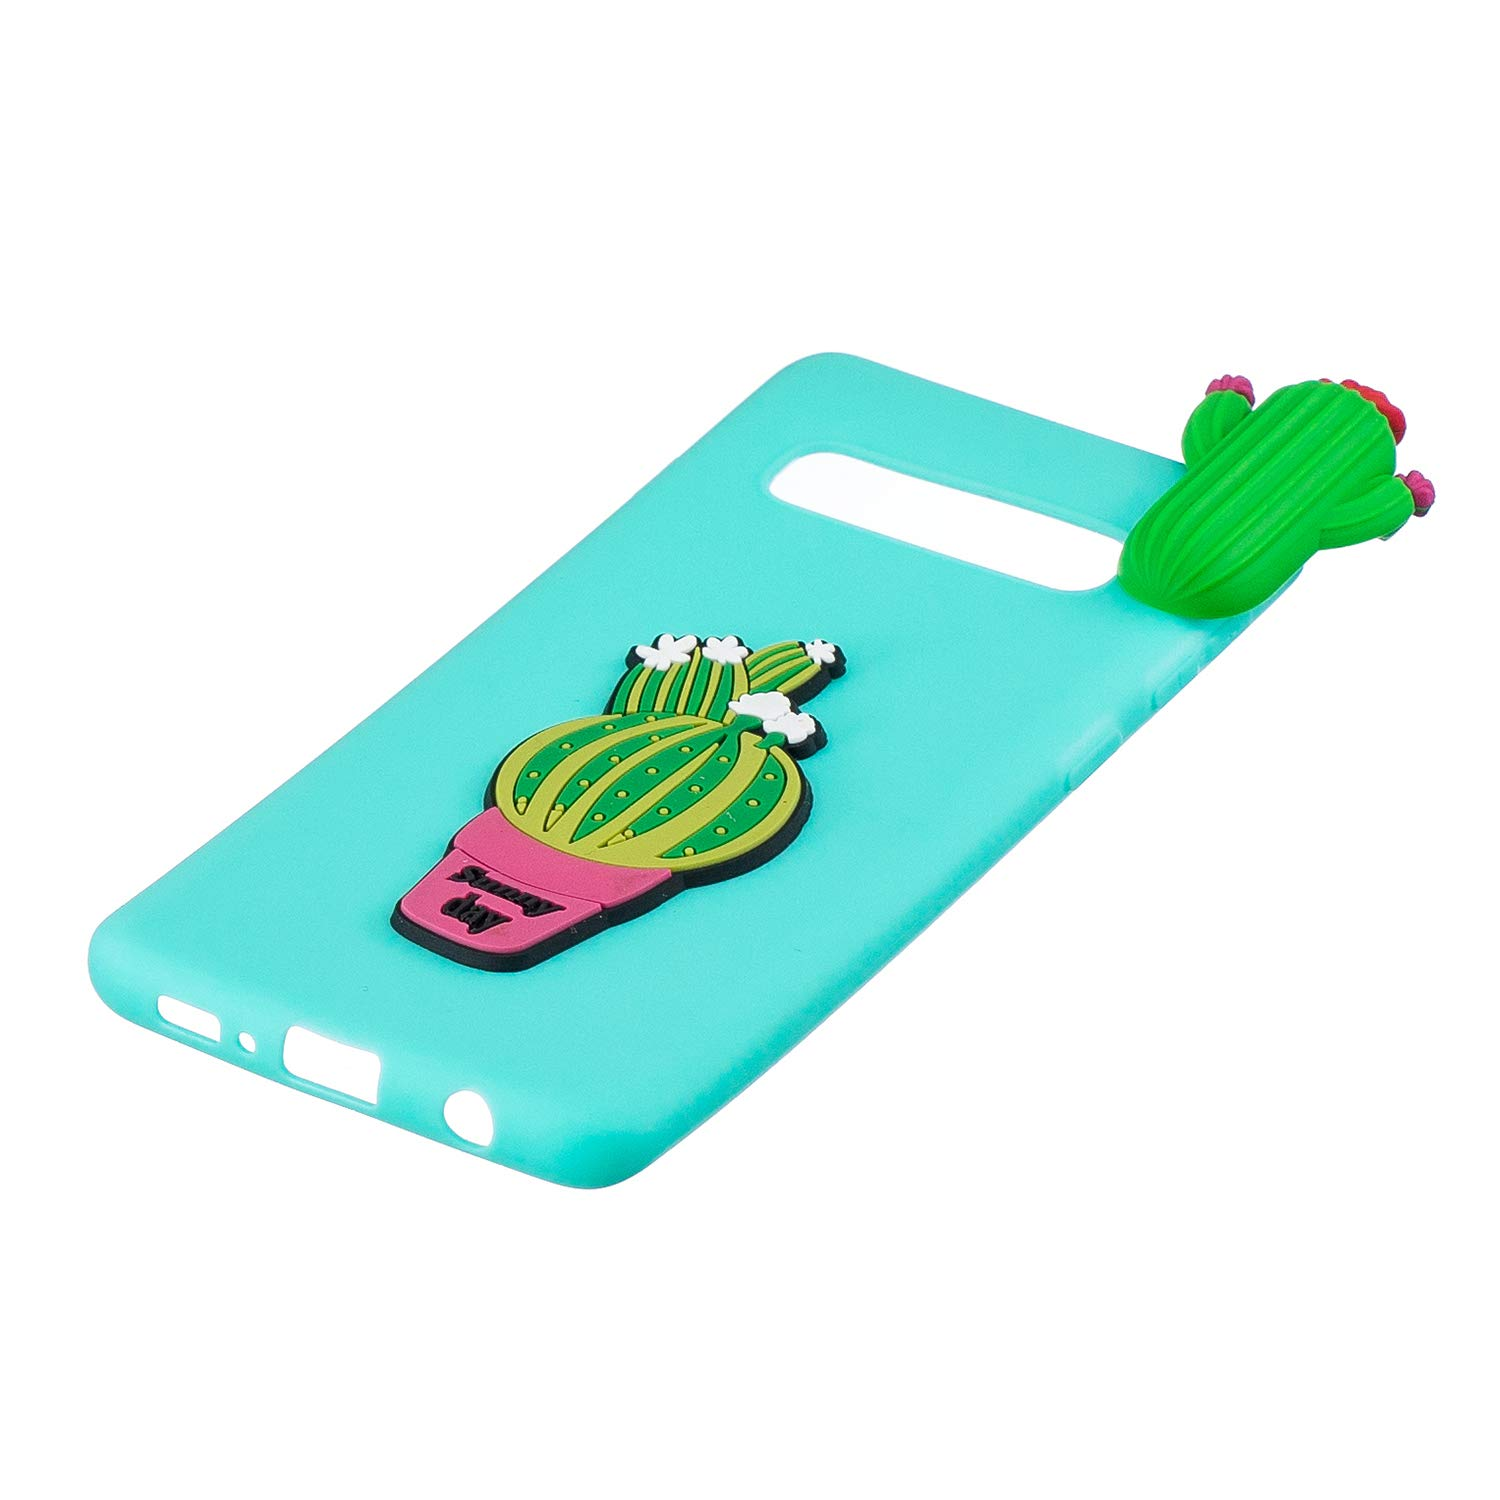 TPU Case for Samsung Galaxy S10,Moiky Funny 3D Cactus Design Ultra Thin Soft Silicone Resistant Back Cover Phone Case Unique Style Protect Case by MOIKY (Image #4)